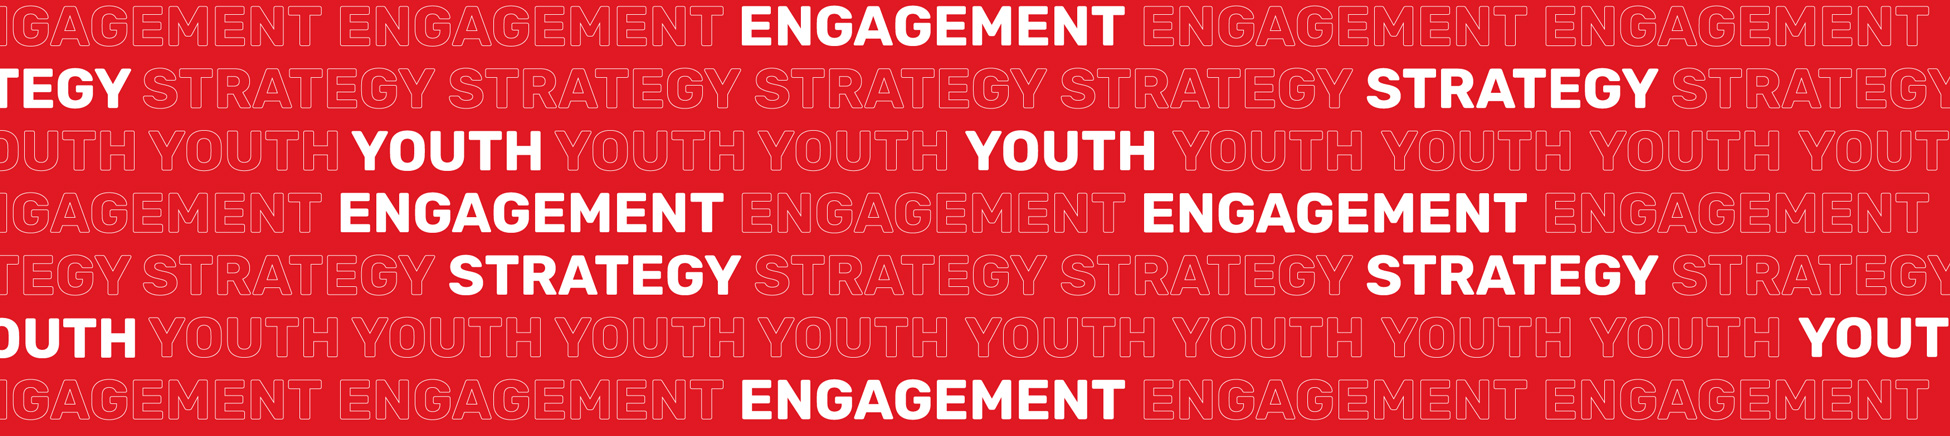 Youth Engagement Strategy